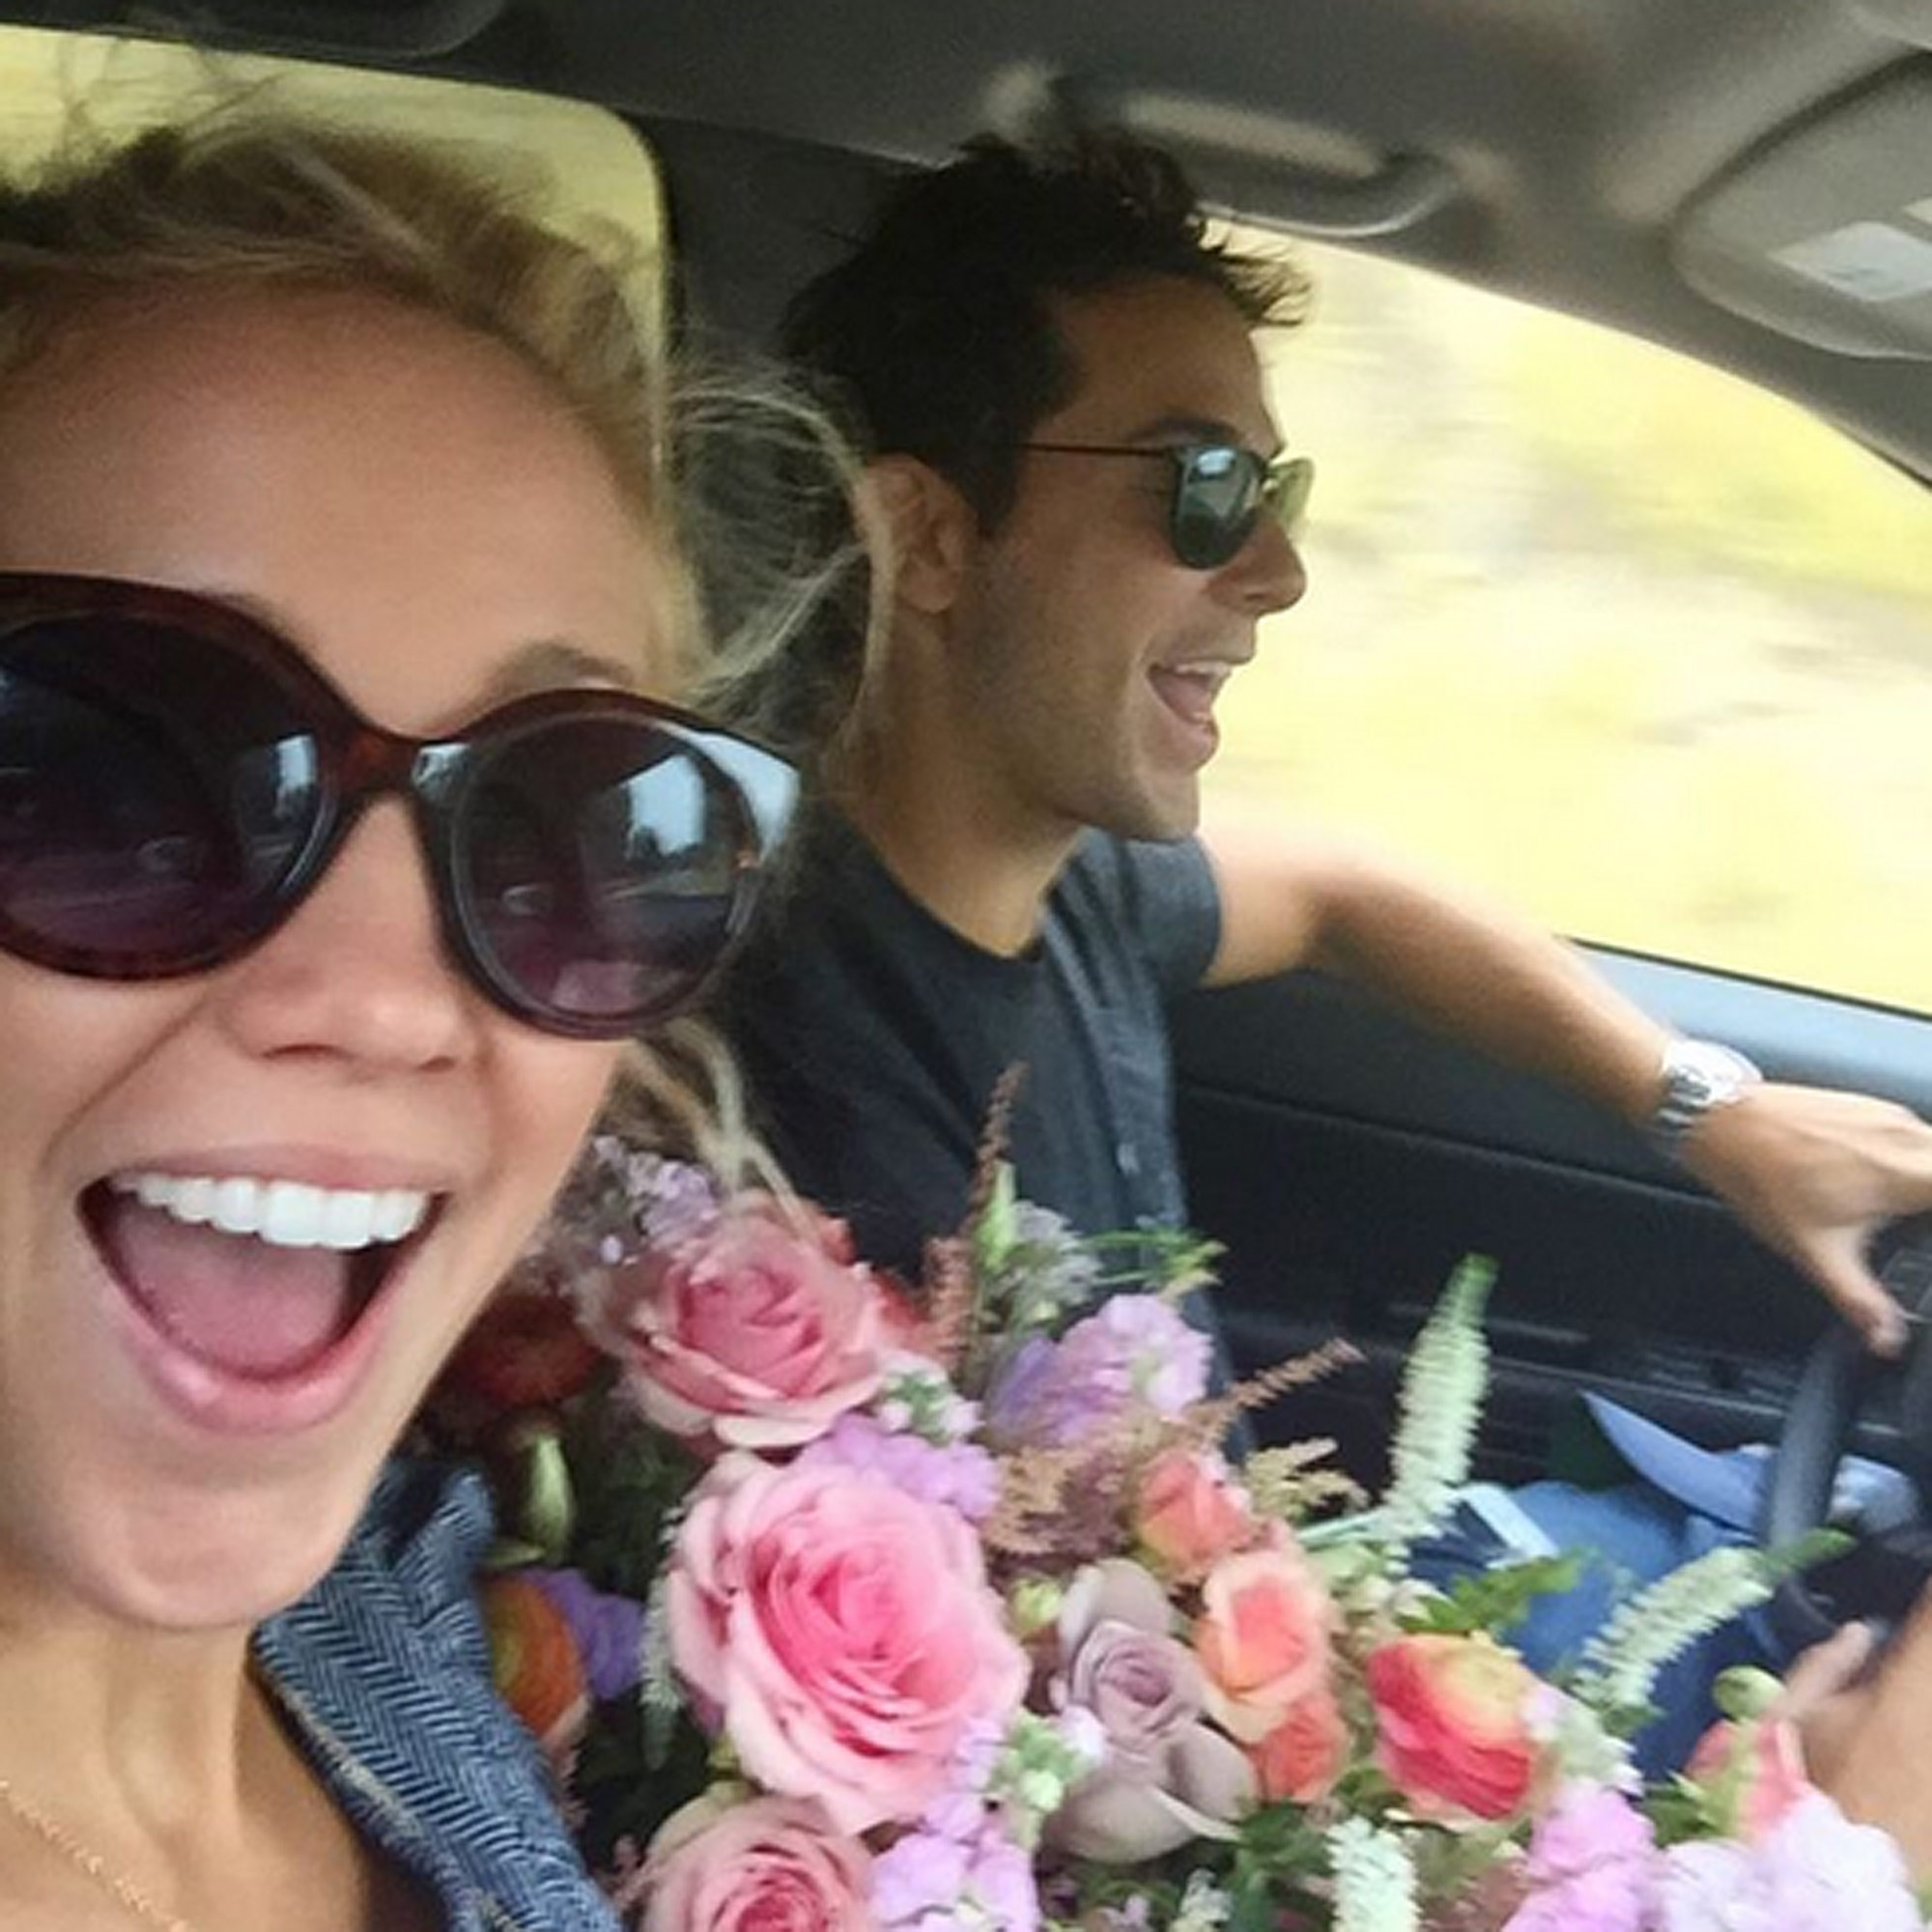 https://www.instagram.com/p/BKTTyfYA06m/?hl=en therealannacamp JUST MARRIED!!!#getawaycar Thanku @lotusandlilyfloral we packed the car with roses!!